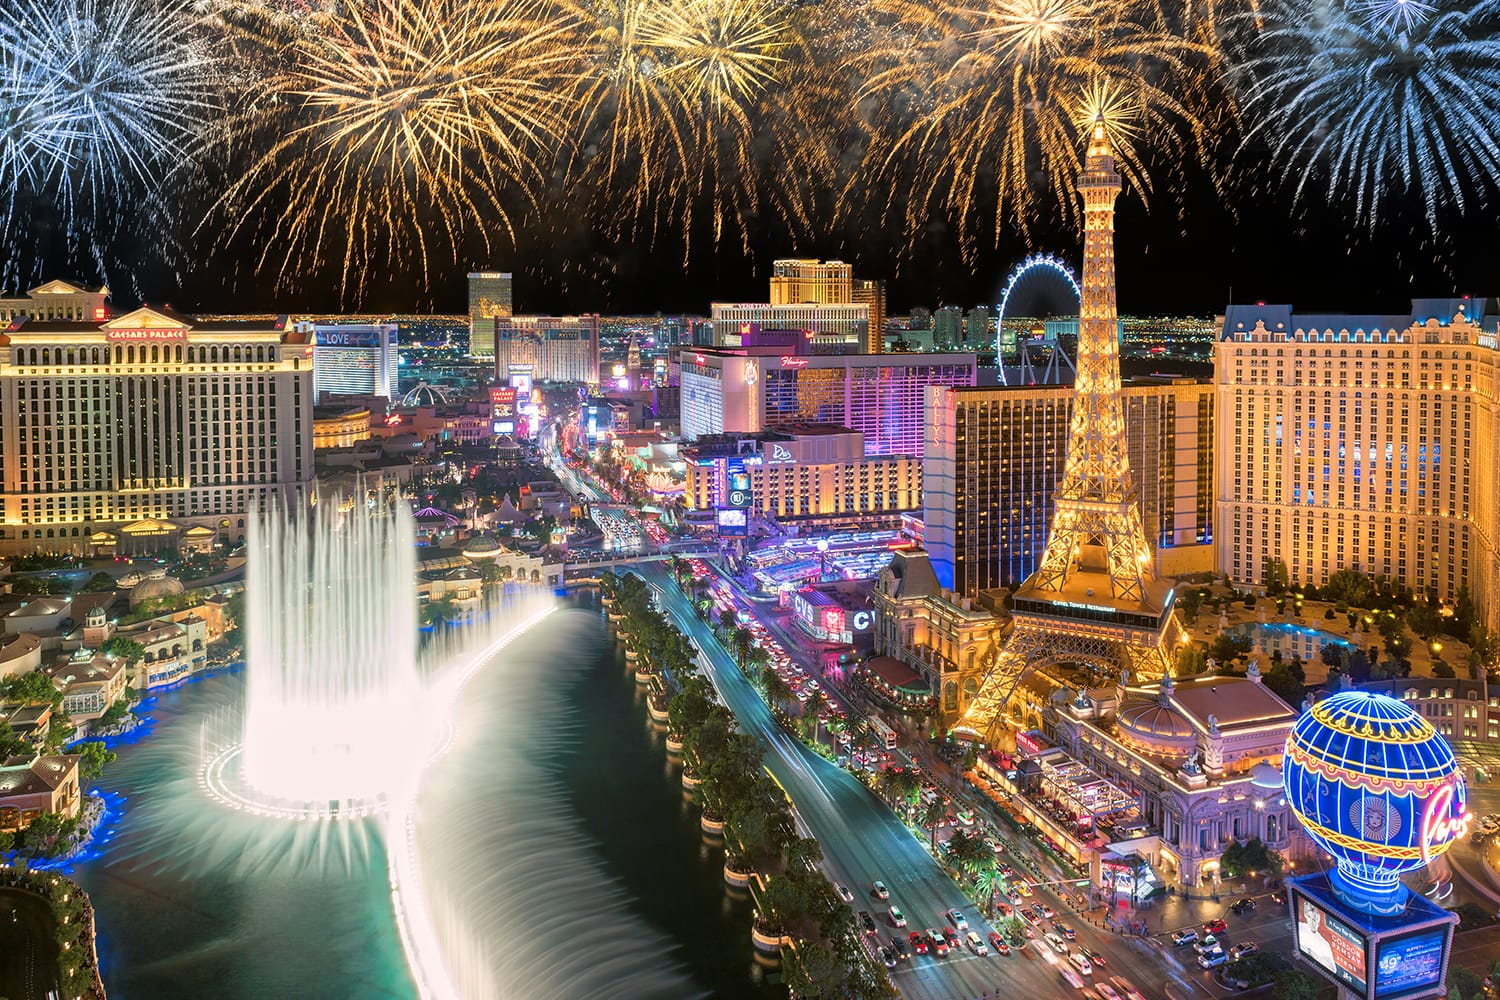 Fireworks on New Years Eve in Las Vegas, Nevada, USA